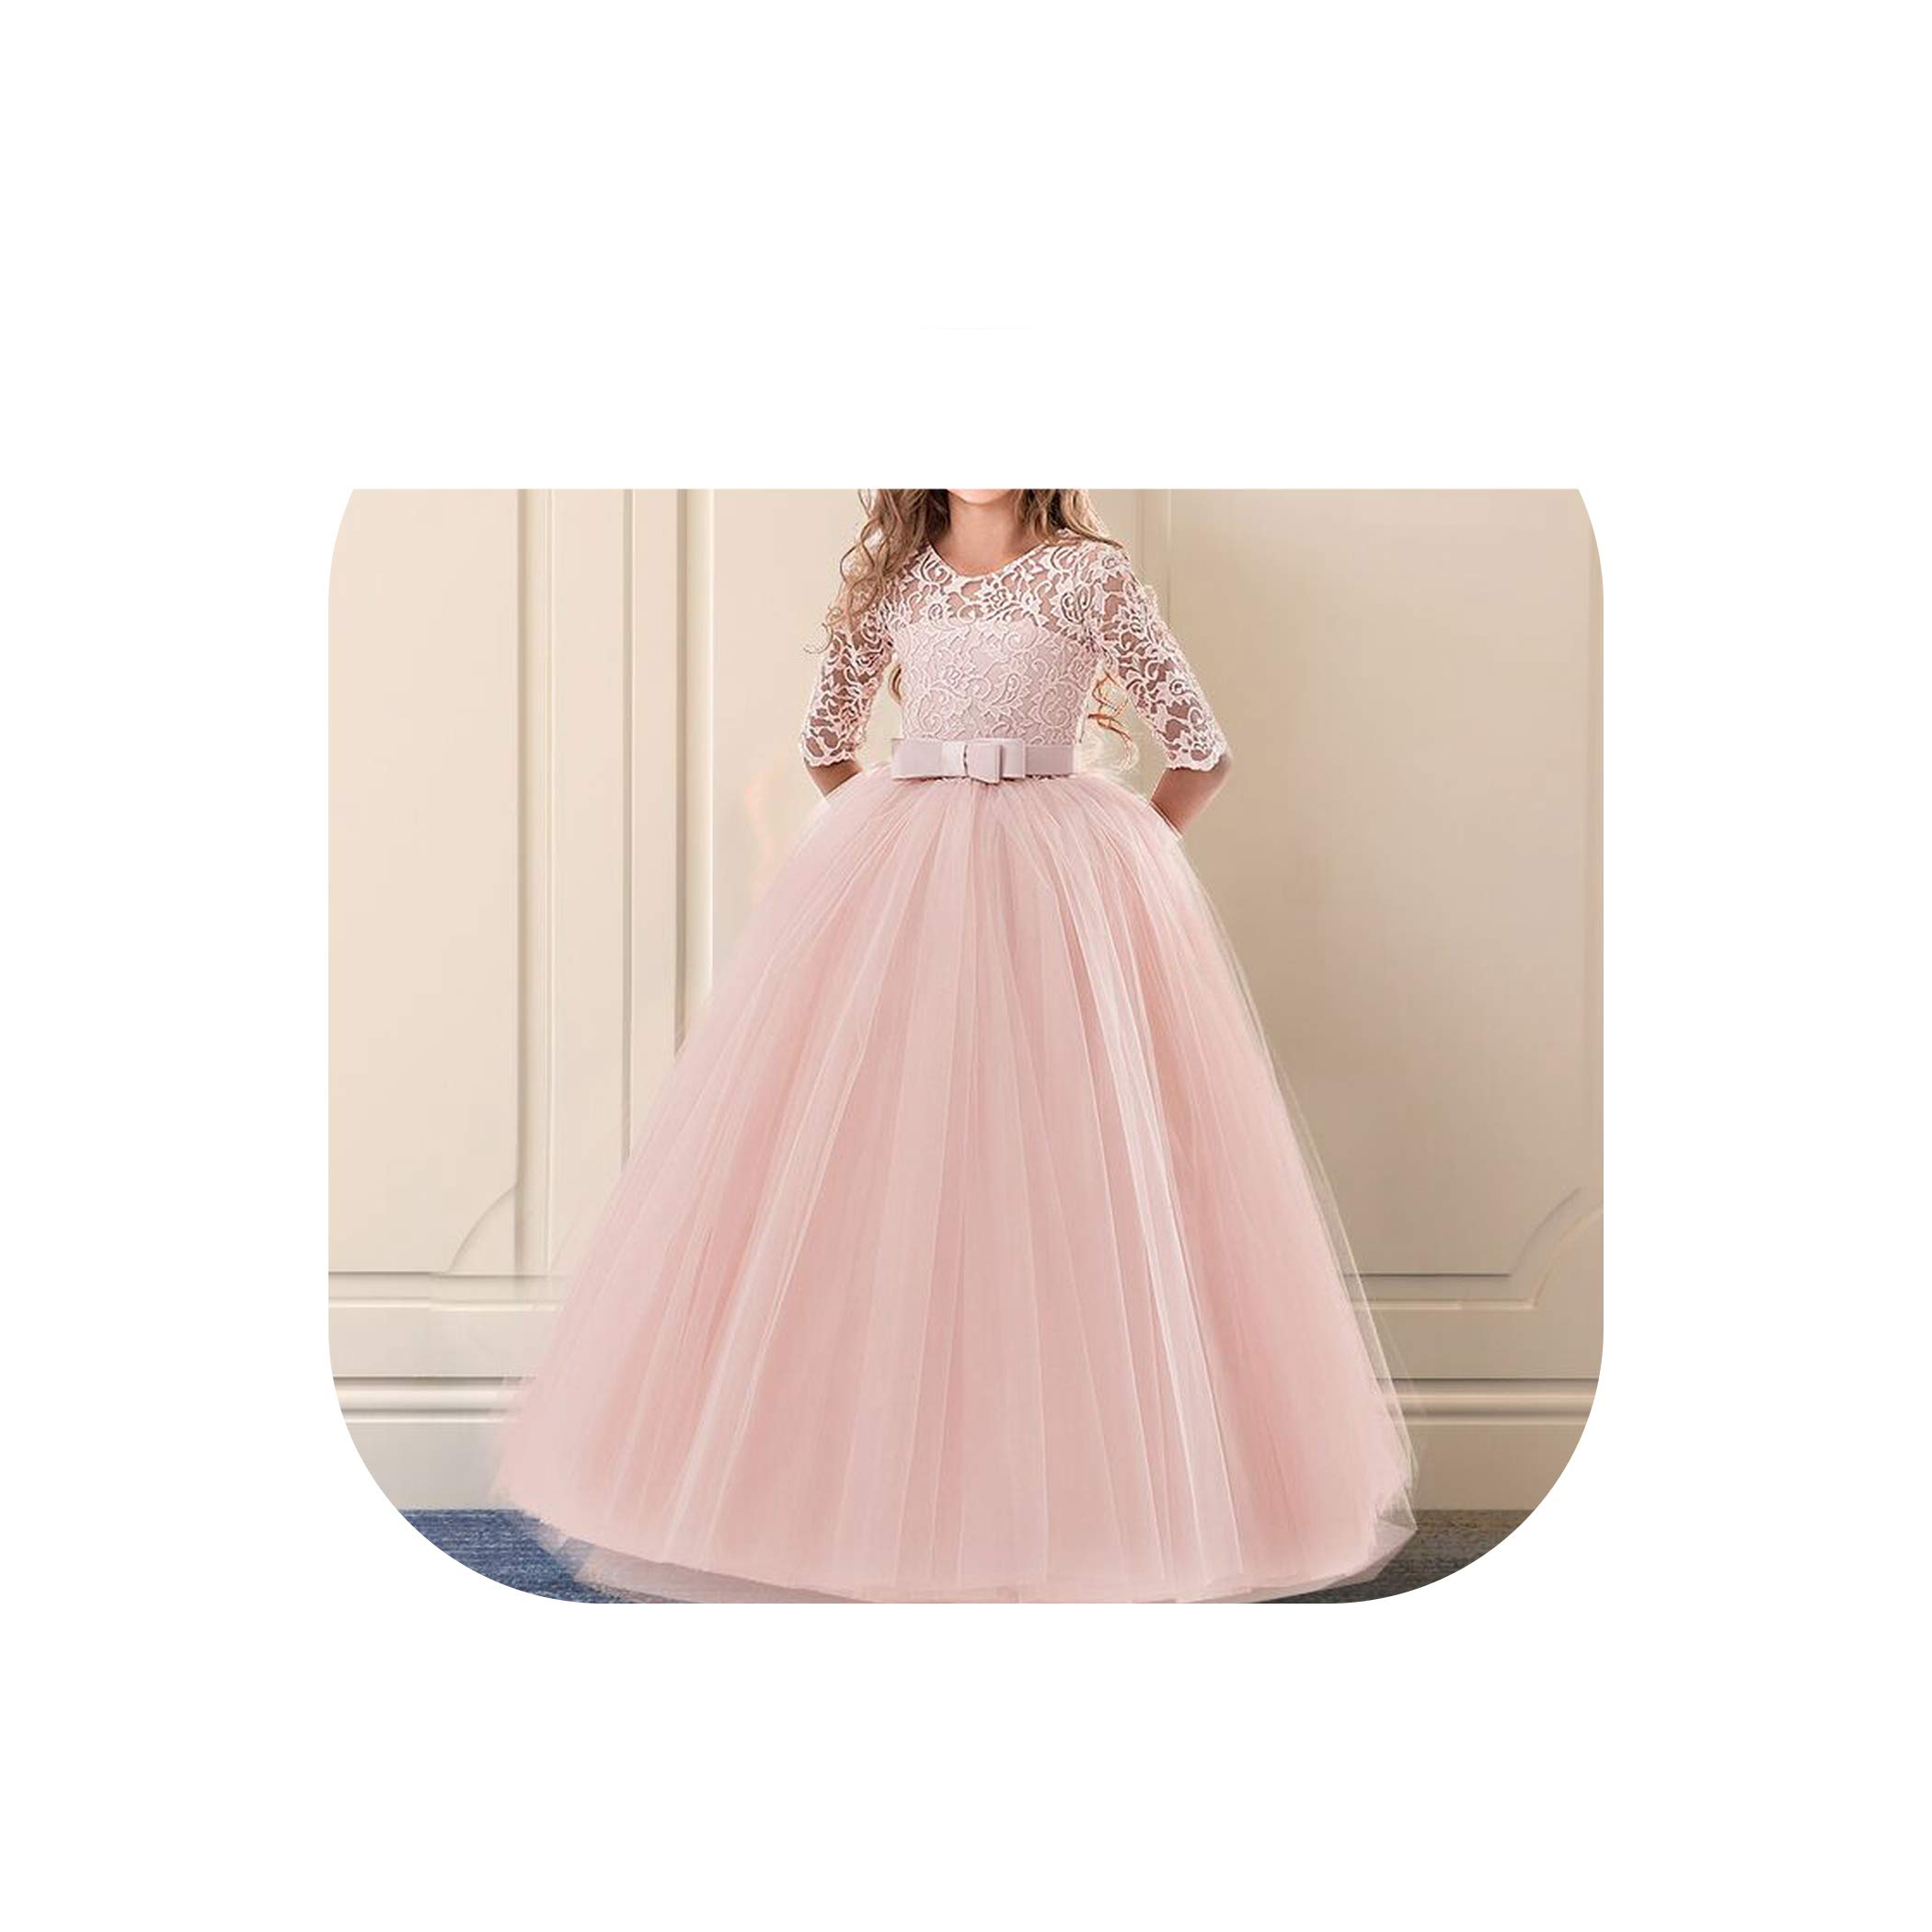 Girls Dress for Exquisite Pink Long Lace Tulle Wedding Dresses Teens Kids Graduation Costume Girl Childrens Clothing,Pink 1,11